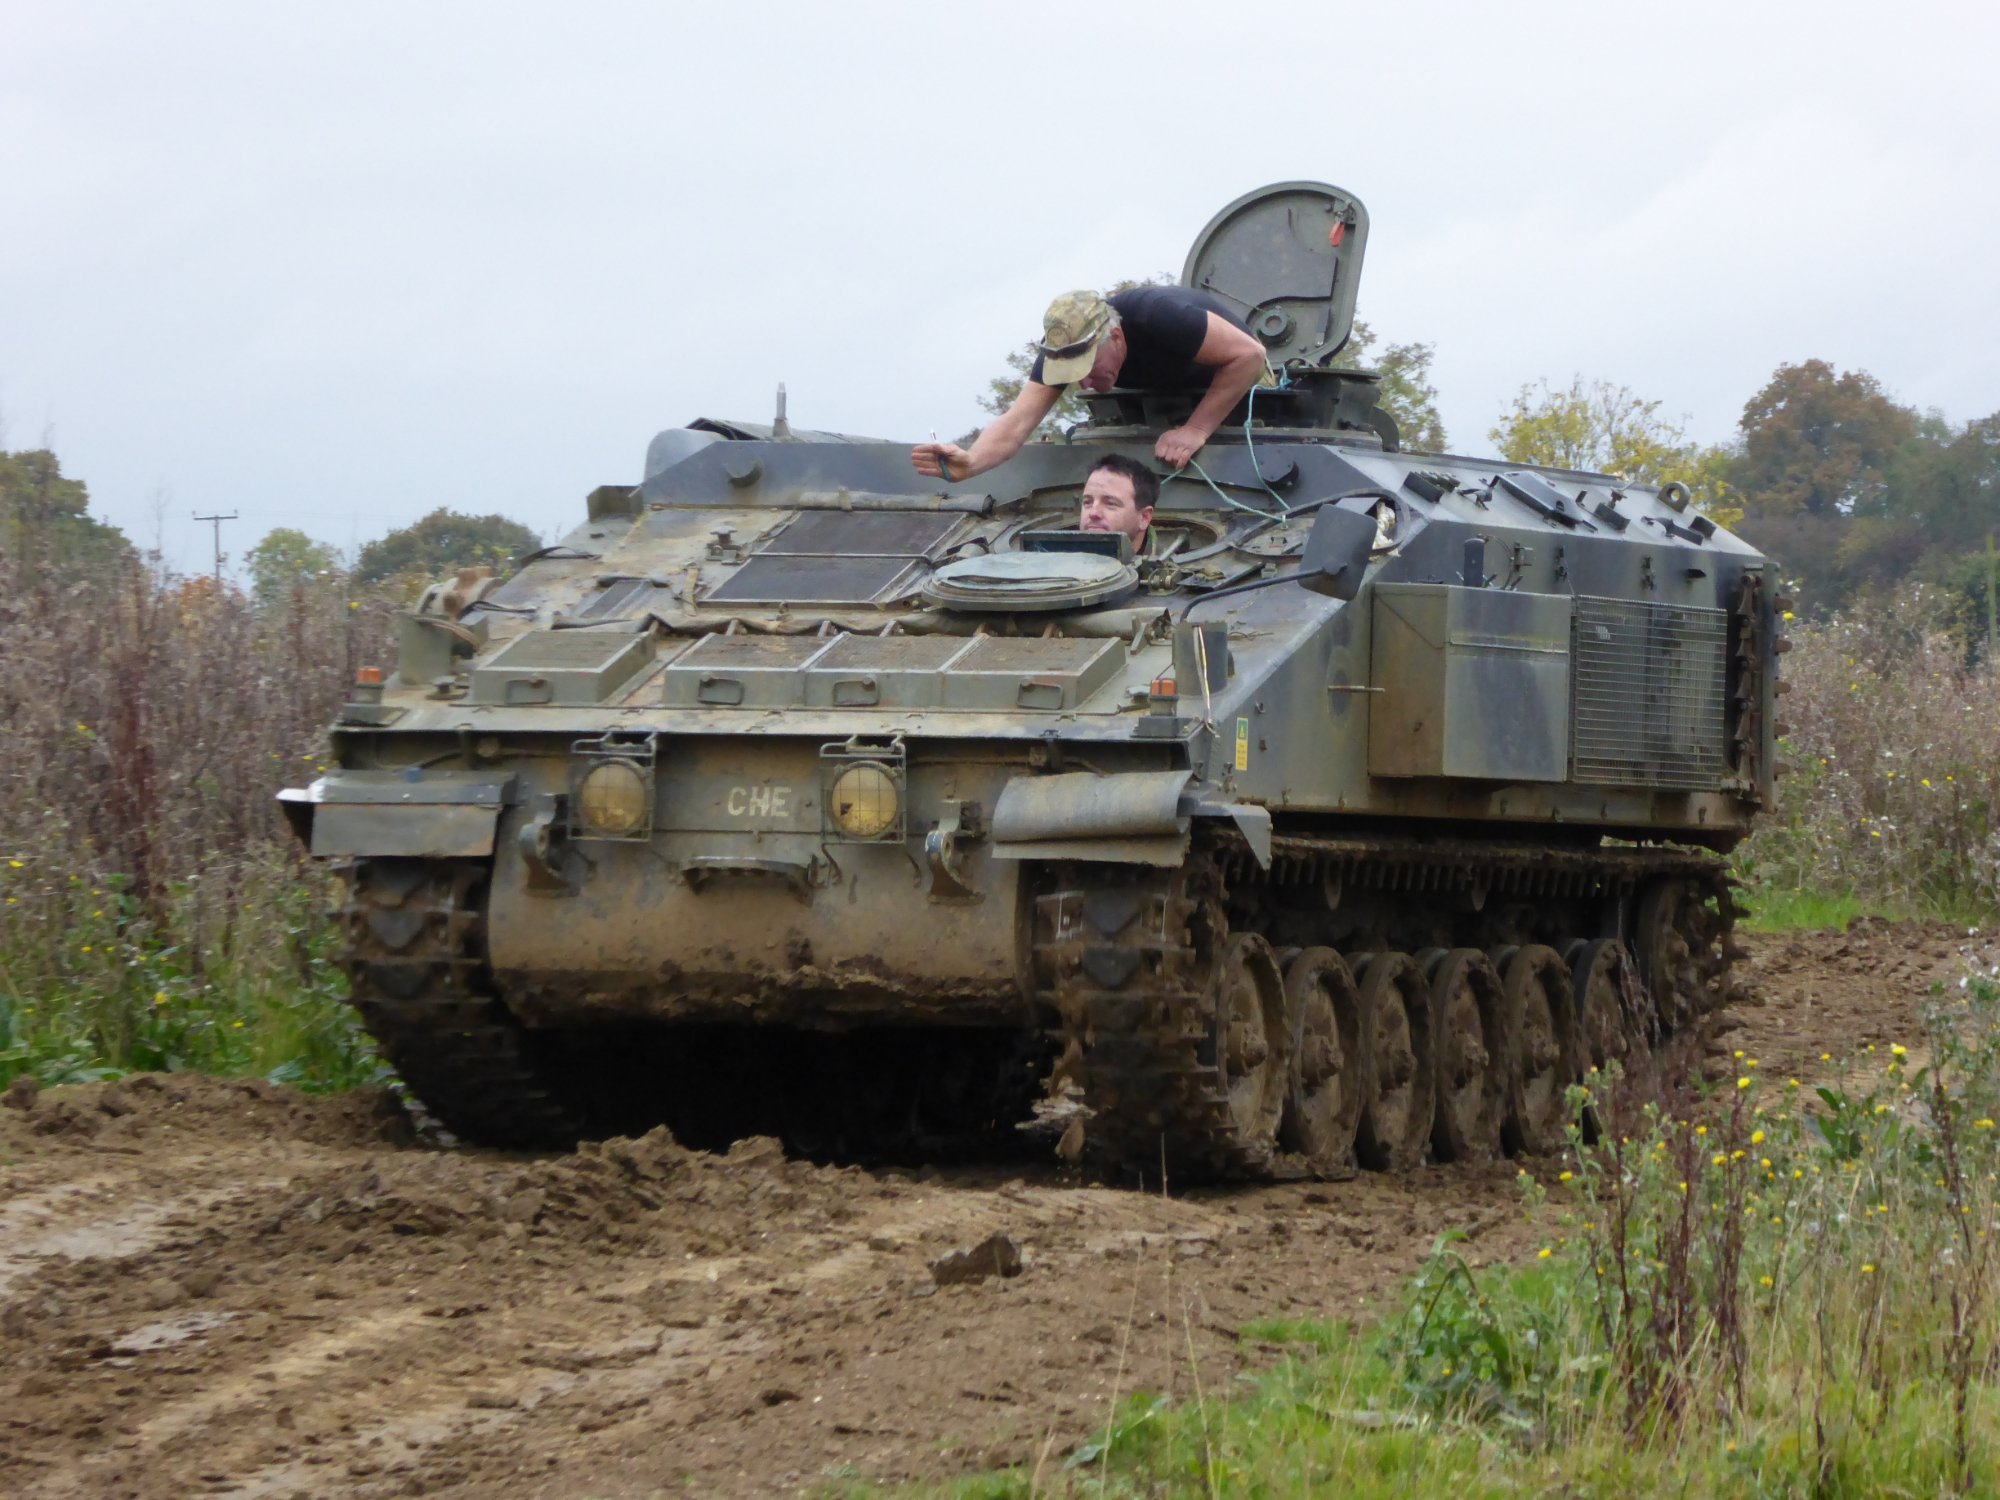 Tanks-Alot Tank Driving Experiences UK - The Stormer HVM Anti-Aircraft Vehicle